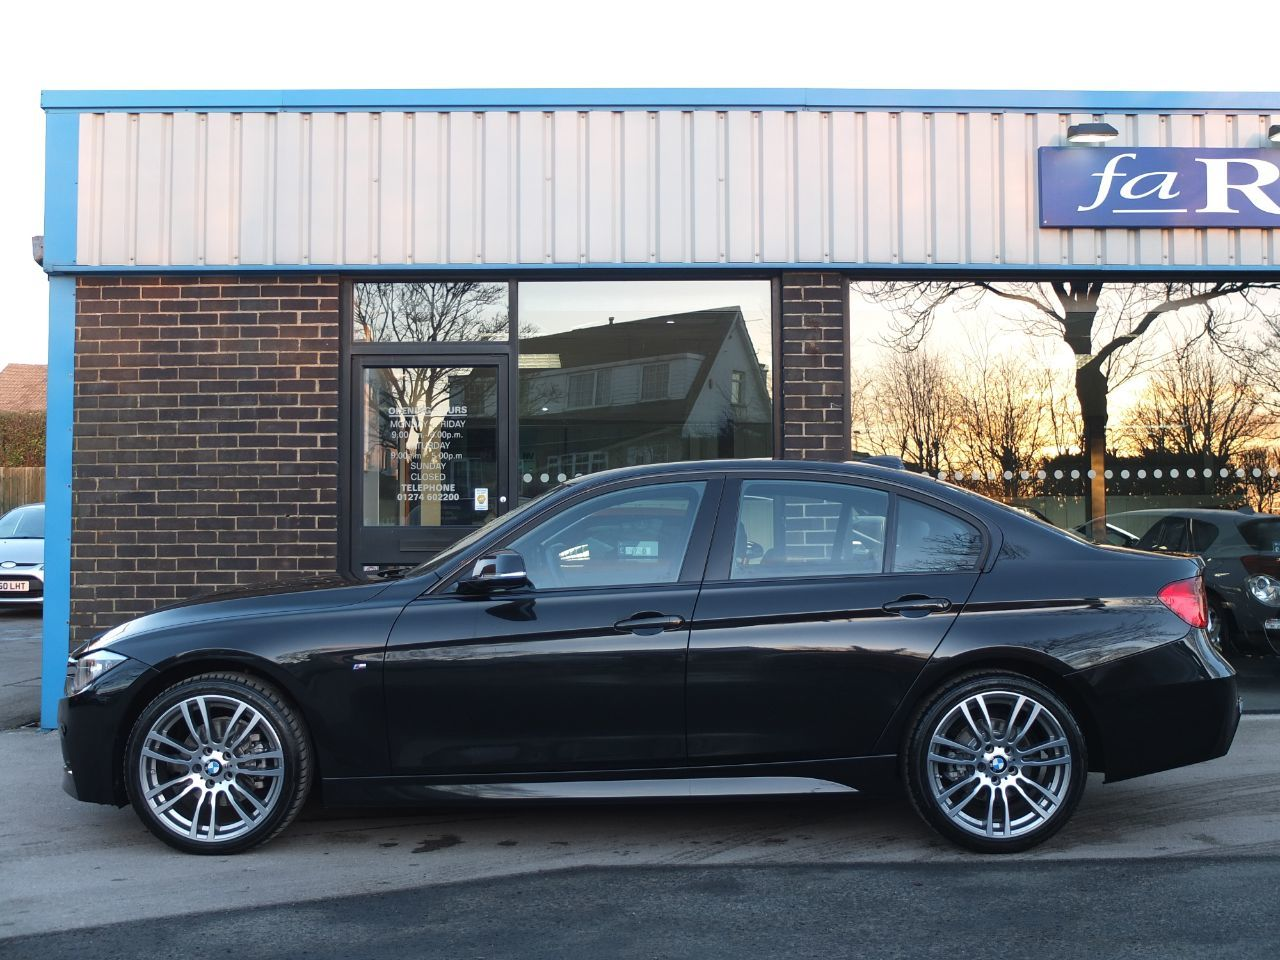 BMW 3 Series 2.0 320d xDrive M Sport 4dr Auto (Business Media ++ Spec) Saloon Diesel Black Sapphire Metallic